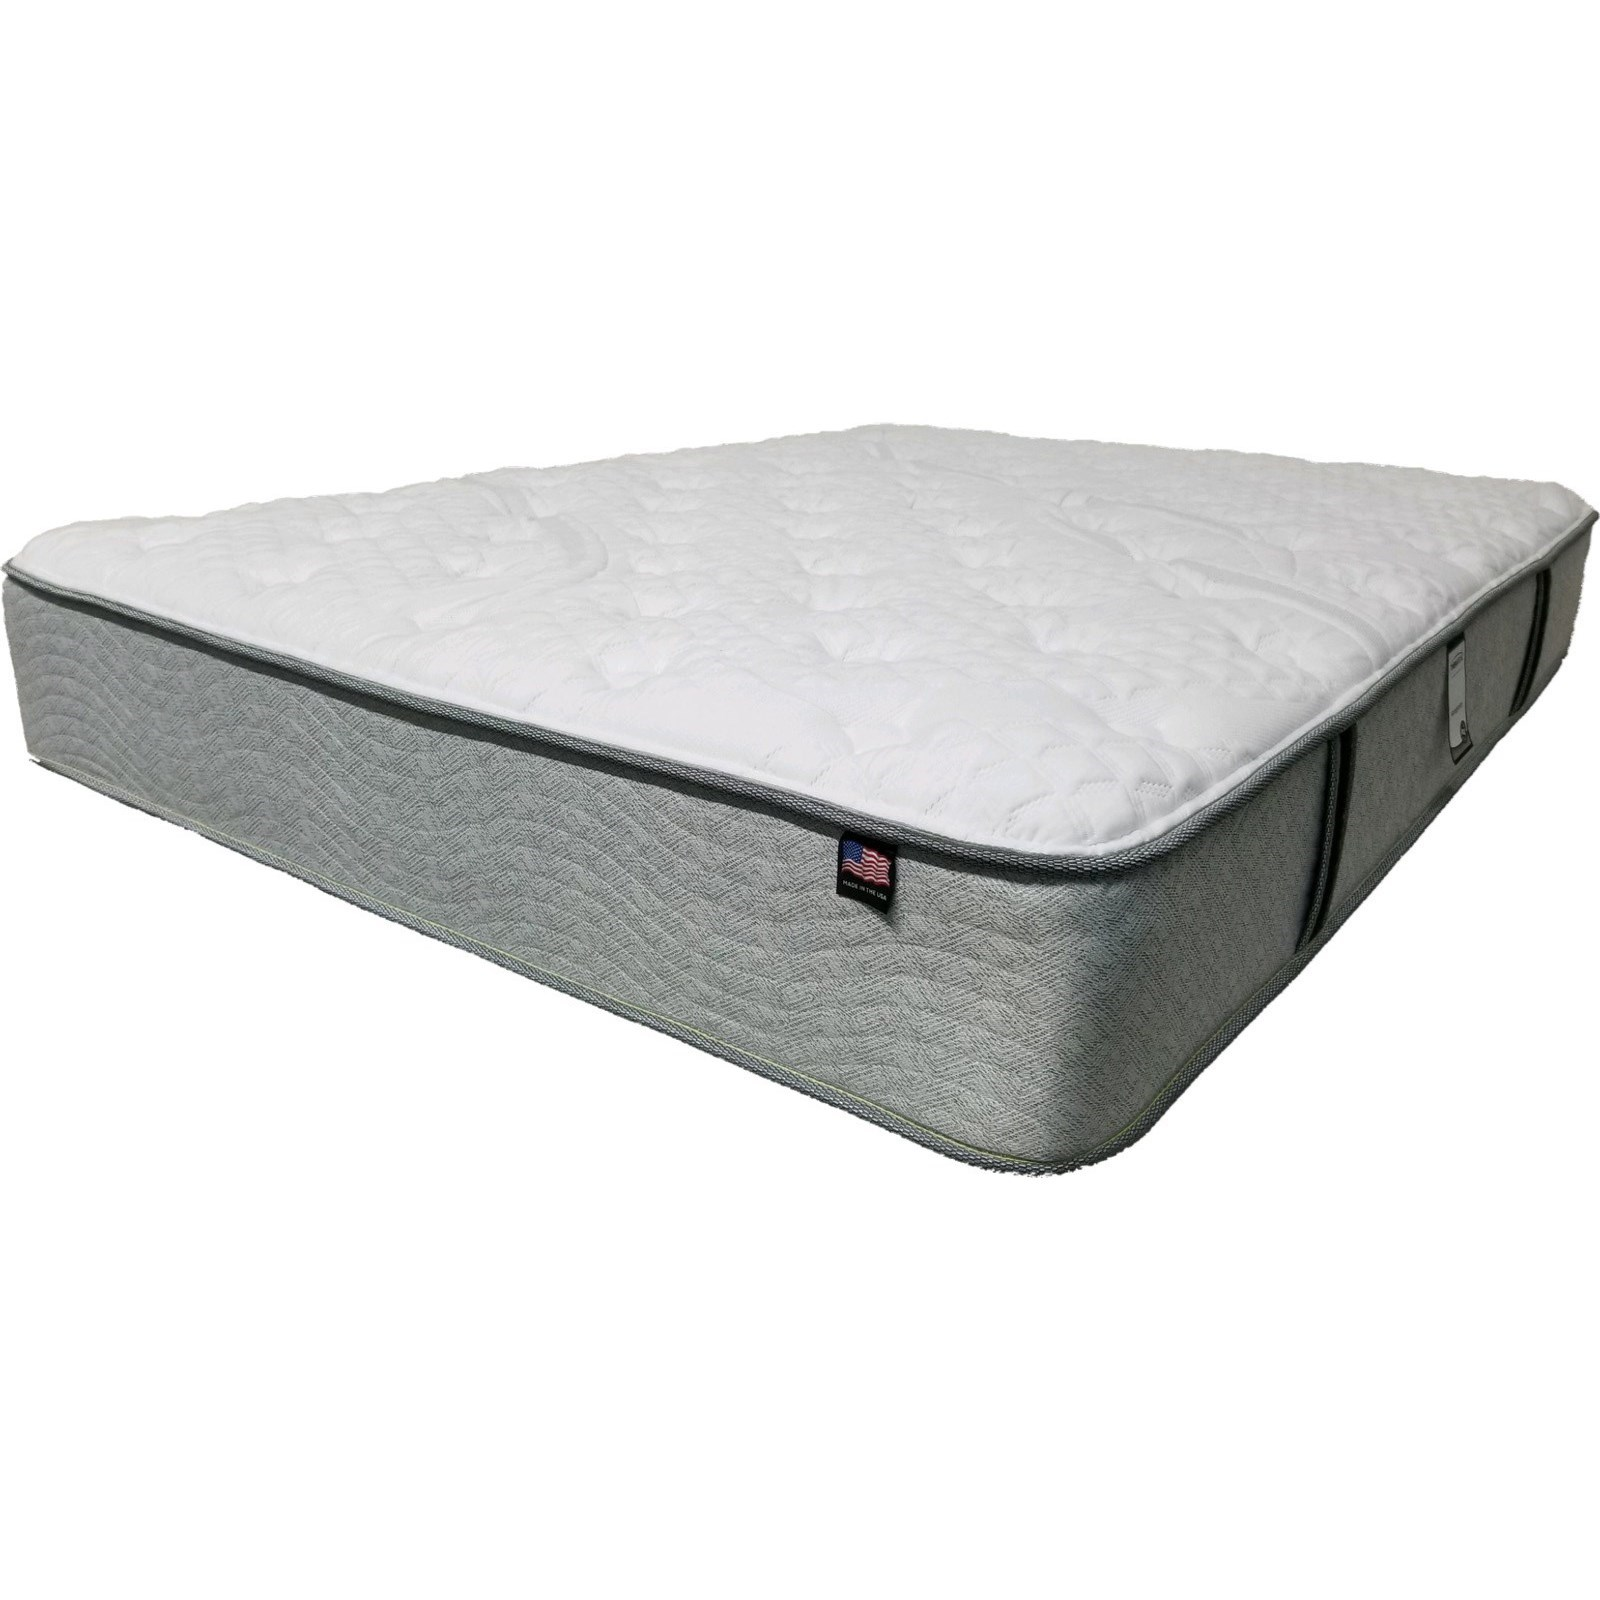 Malibu Plush King Plush Pocketed Coil Mattress by Therapedic at Rooms and Rest